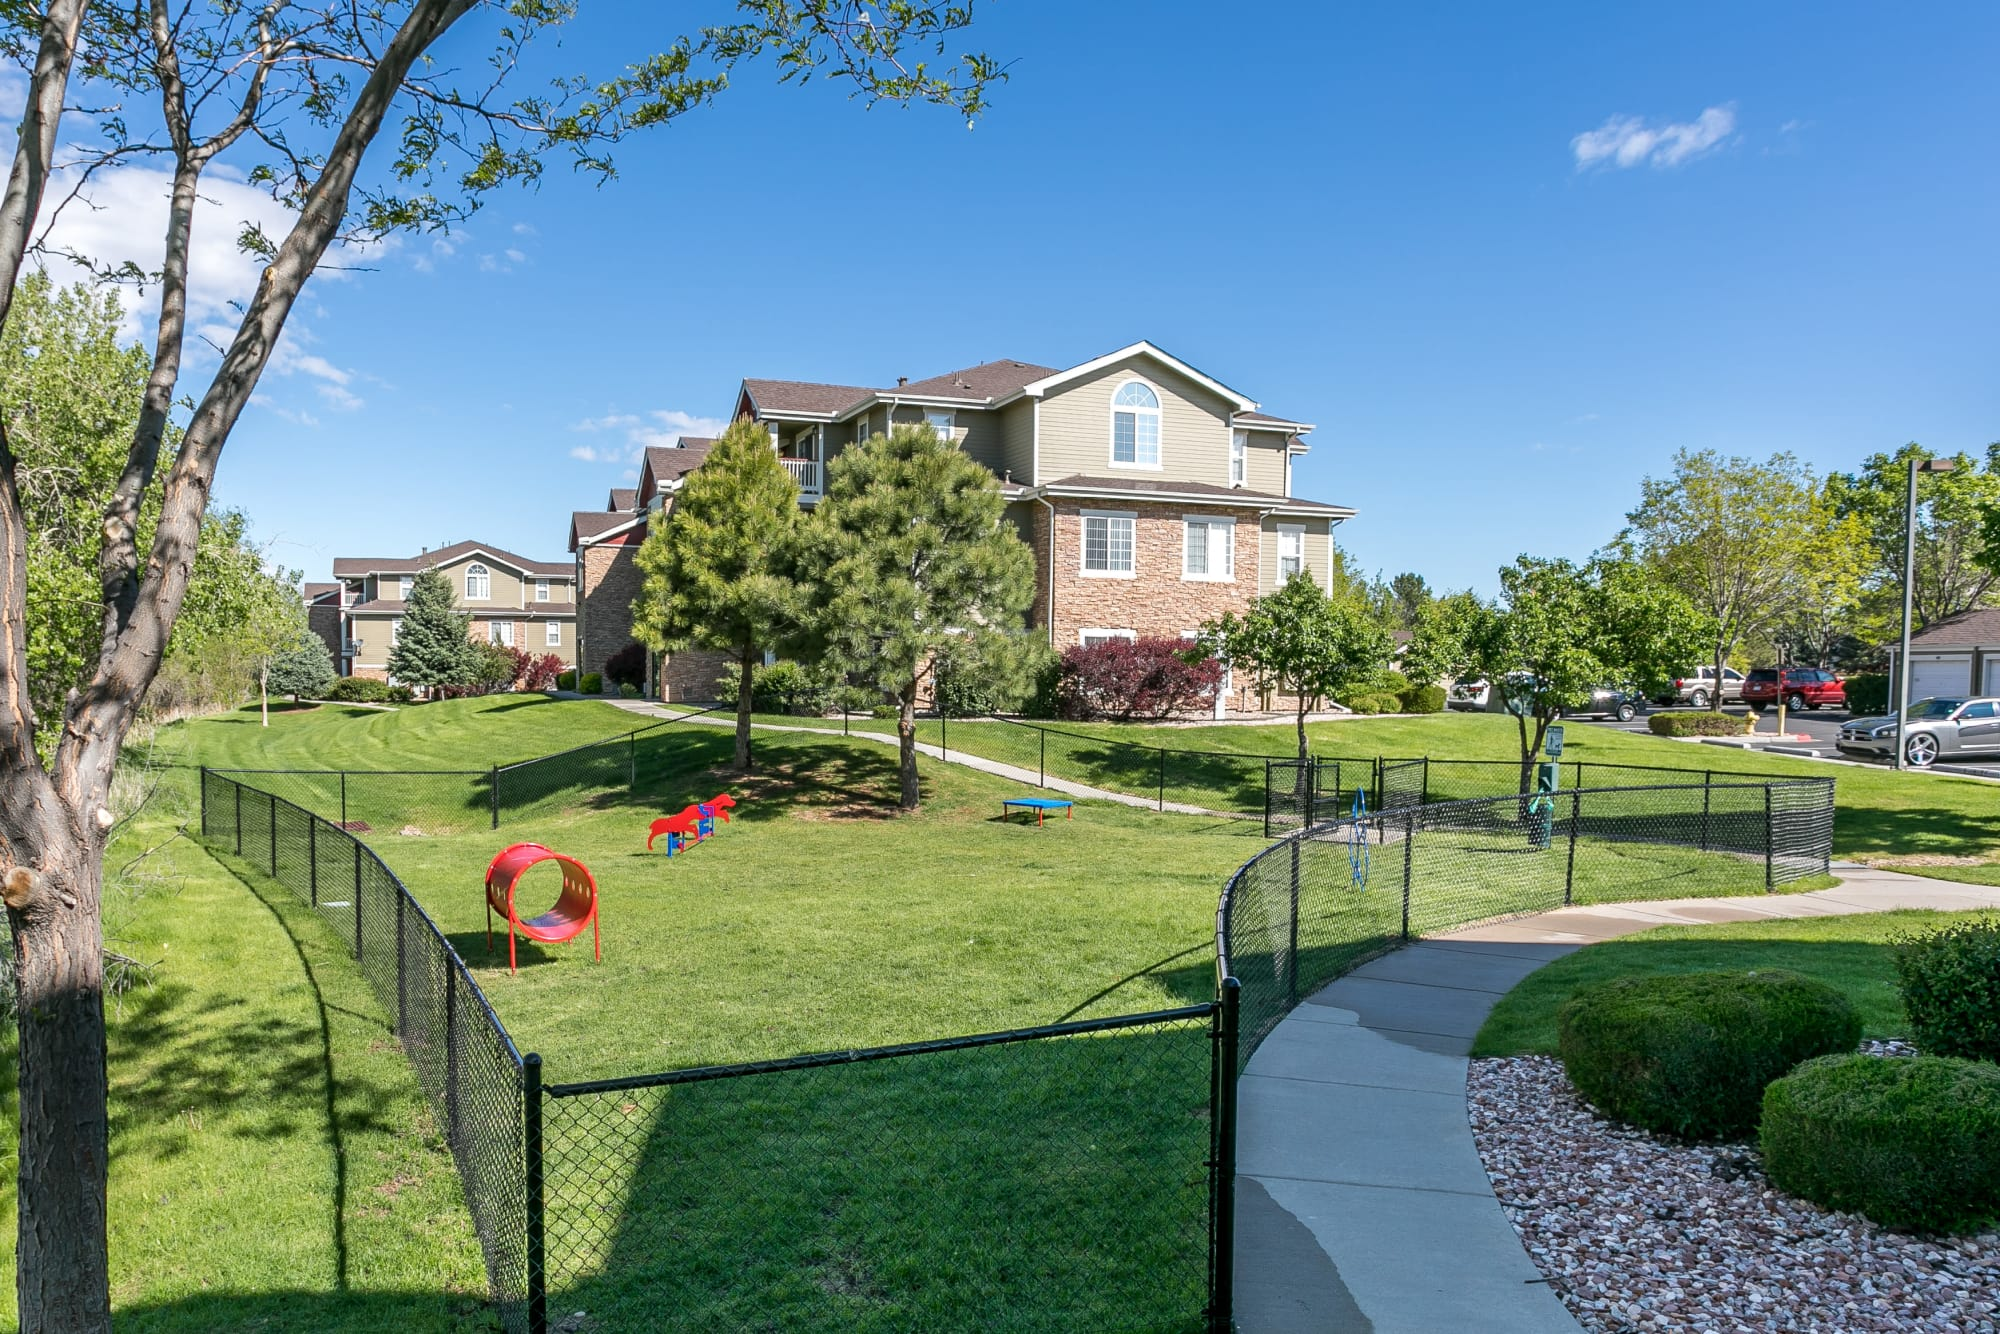 Off-leash dog park at Westridge Apartments in Aurora, Colorado